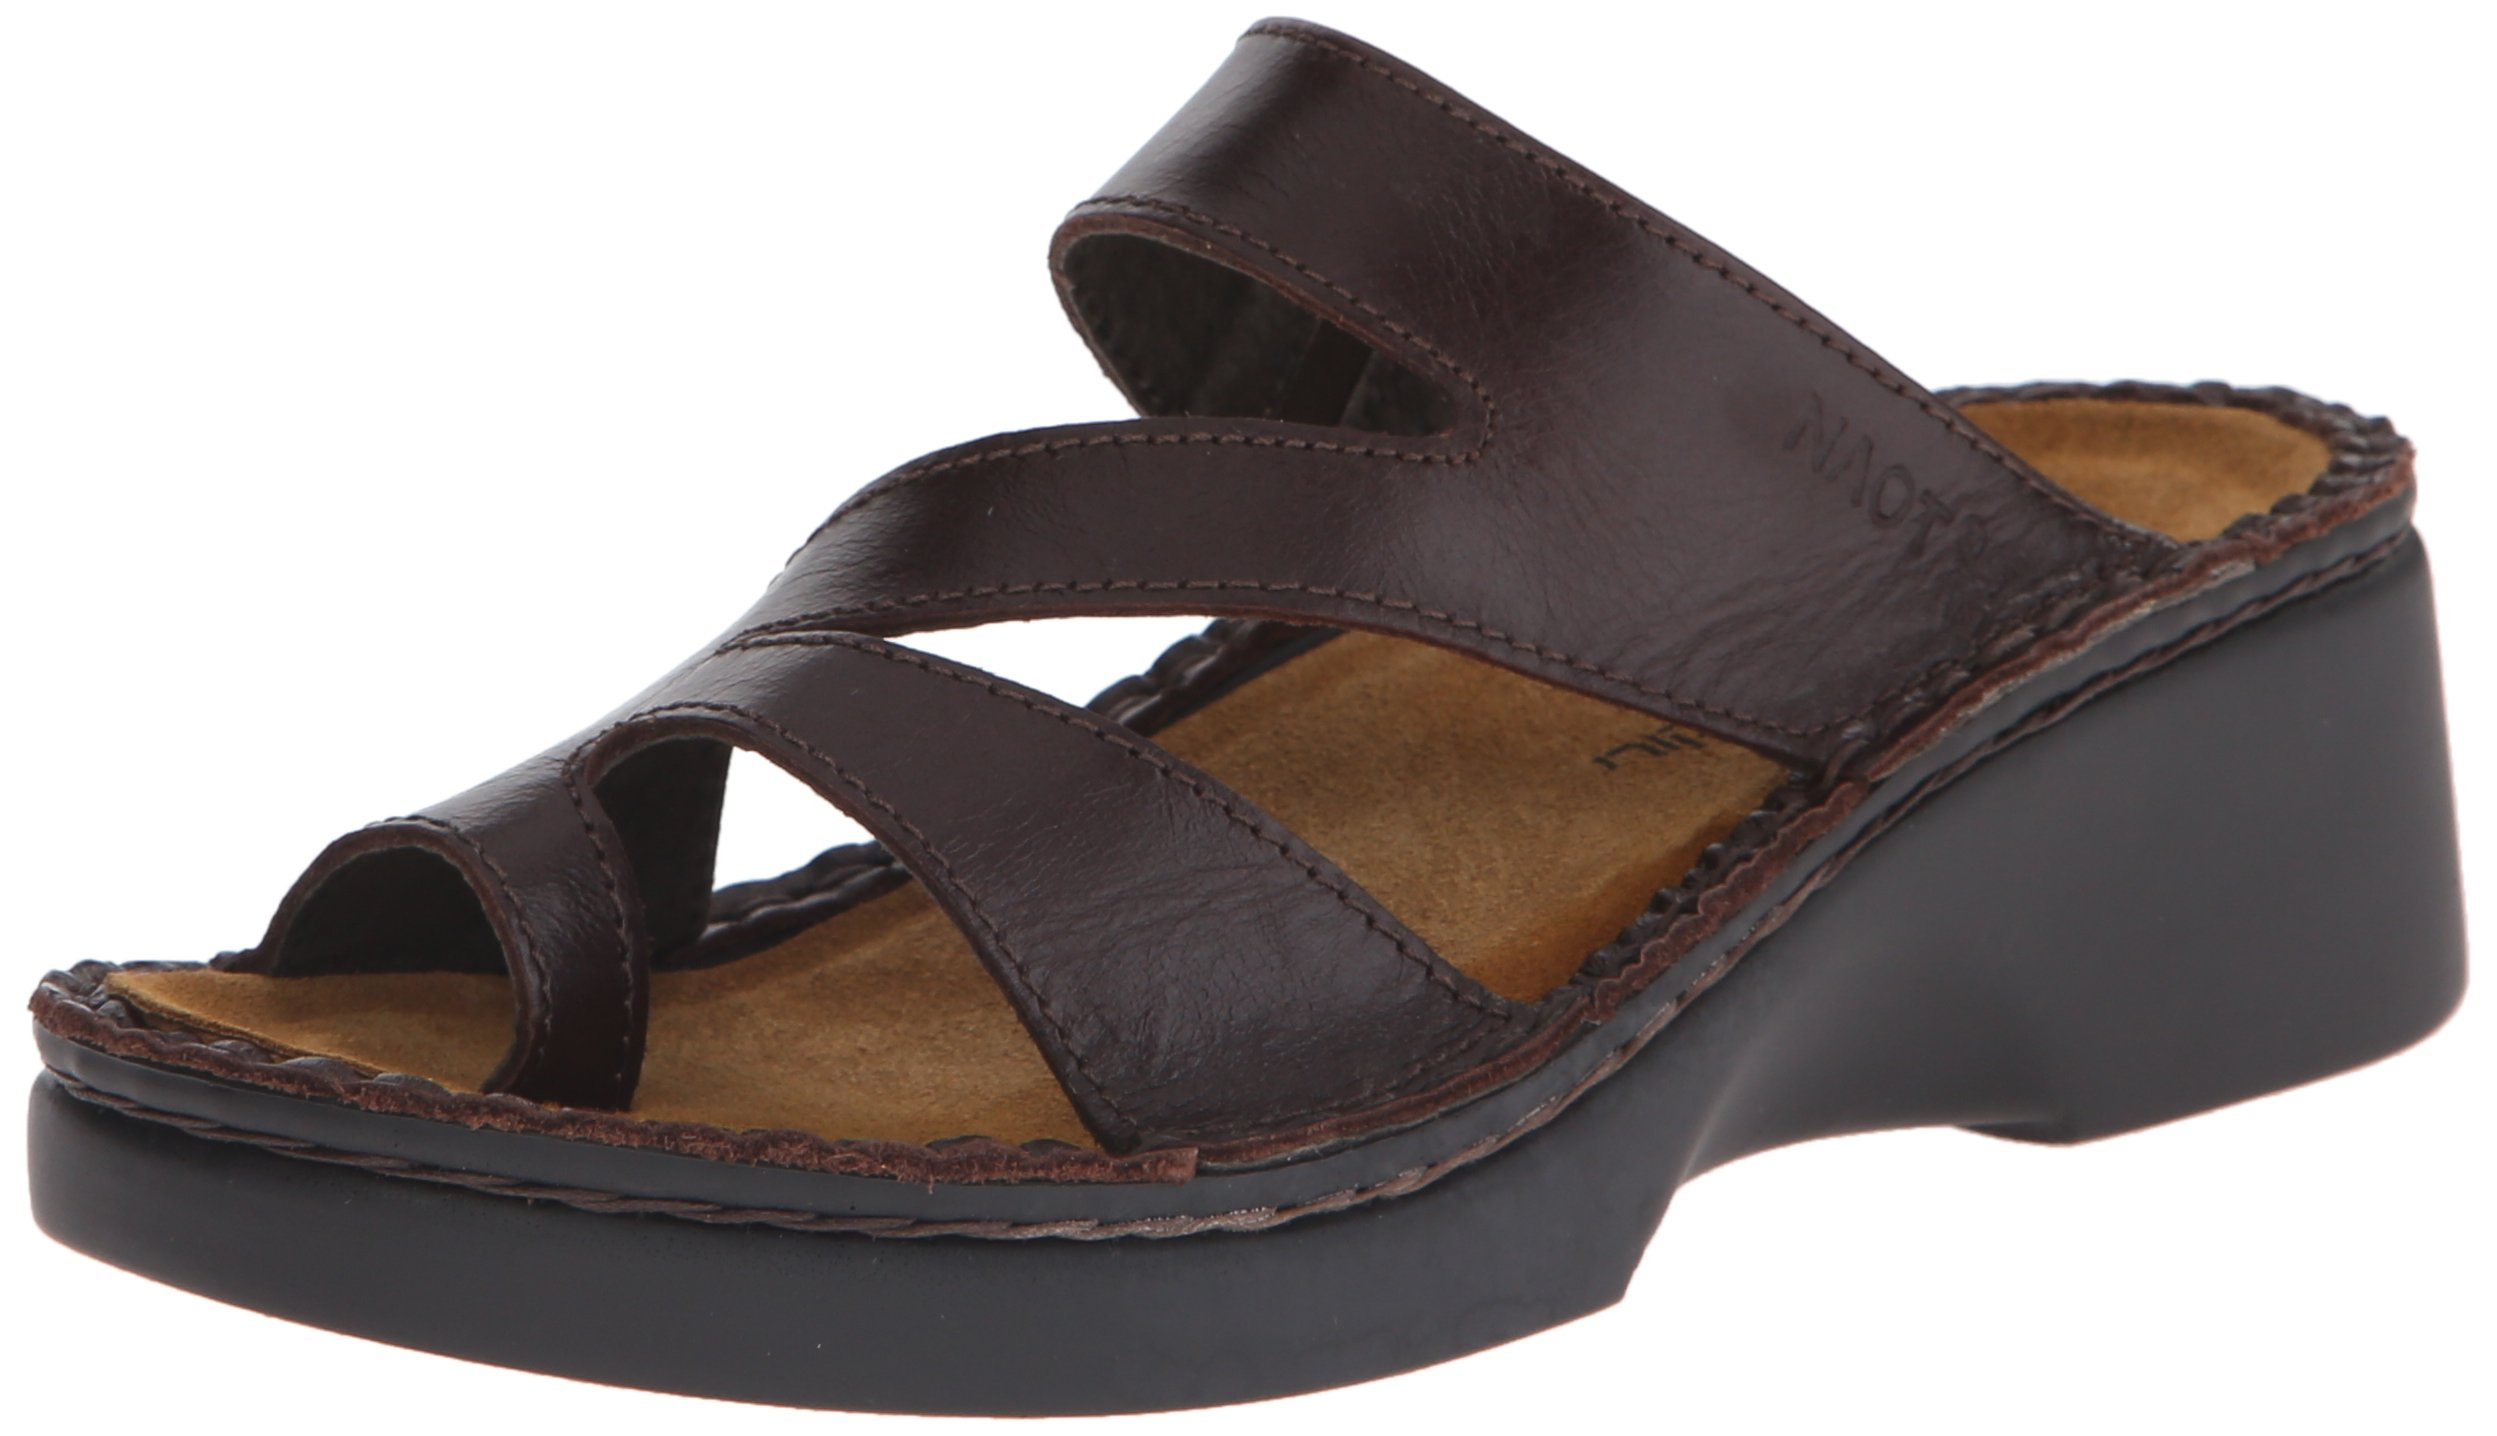 Naot Women's Monterey Wedge Sandal, Walnut Leather, 35 EU/4.5-5 M US